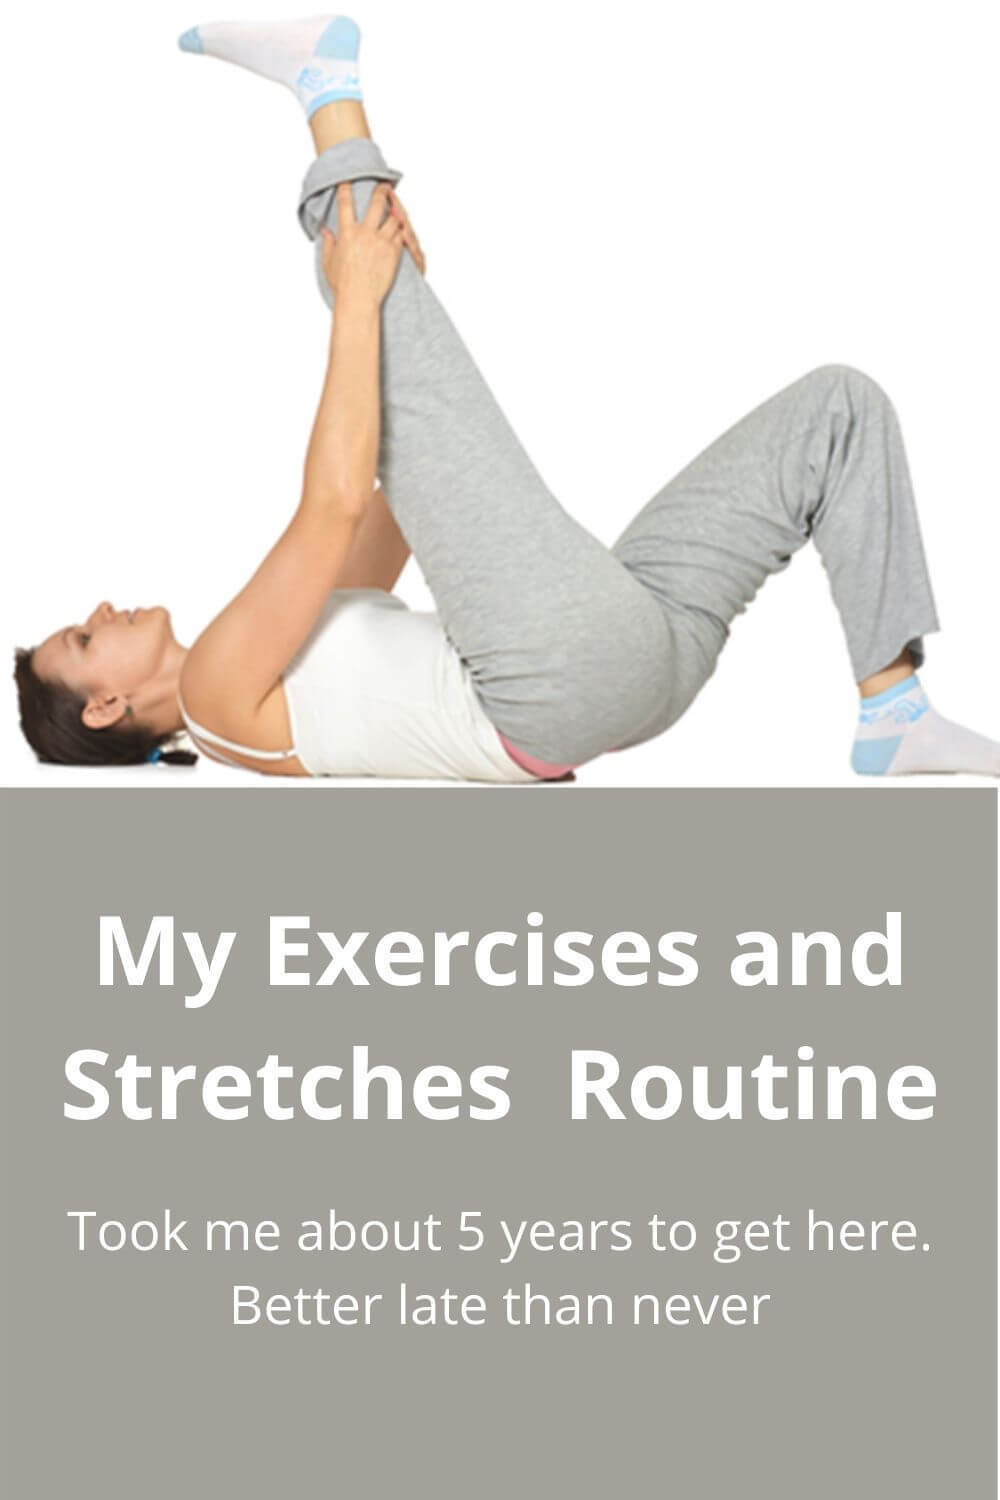 My exercises and stretches routine